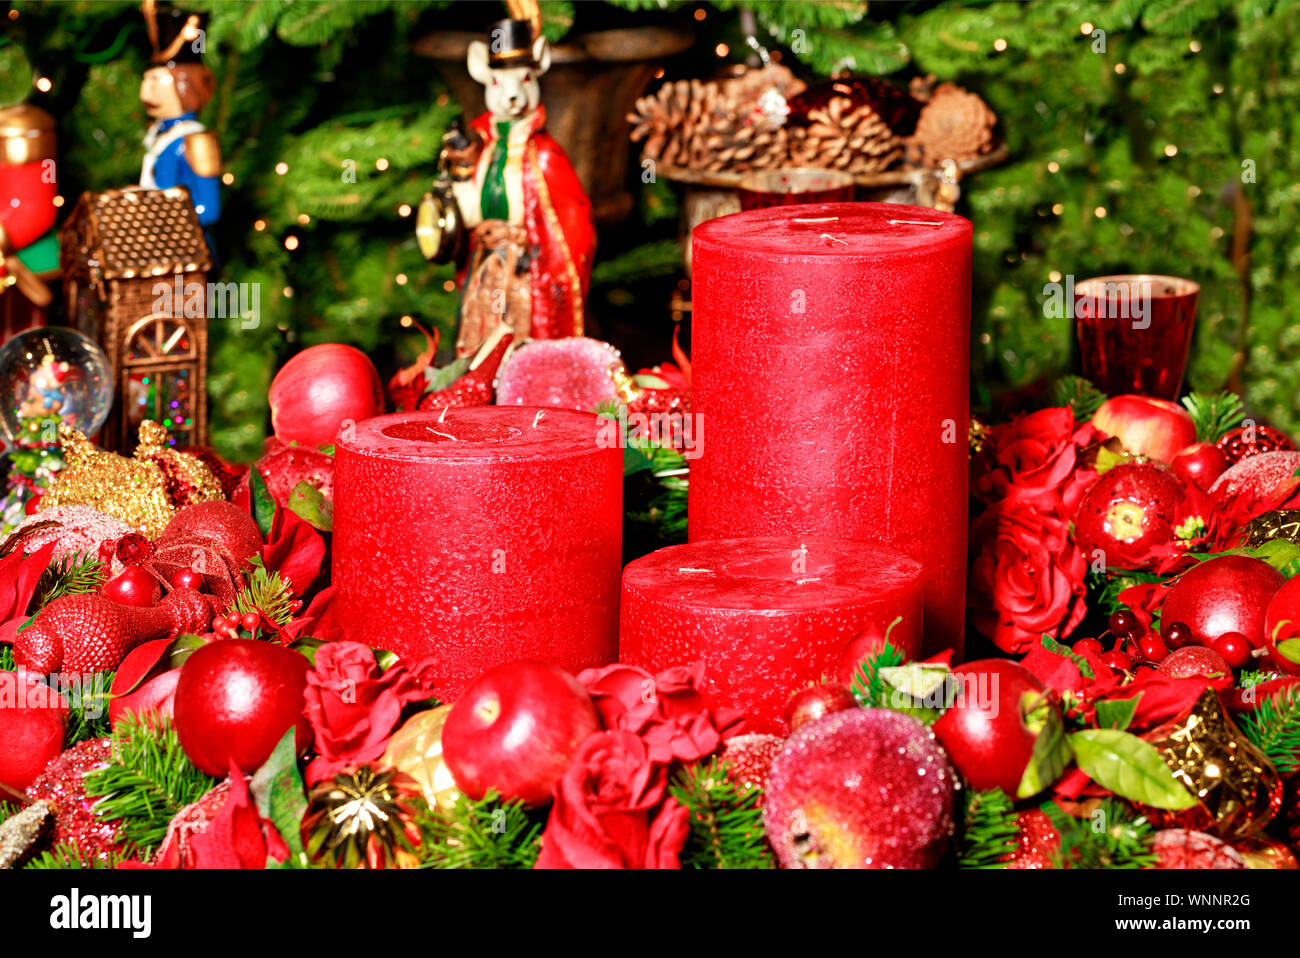 Fairytale Christmas Decorations.Christmas Decoration Three Thick Red Candles Surrounded By